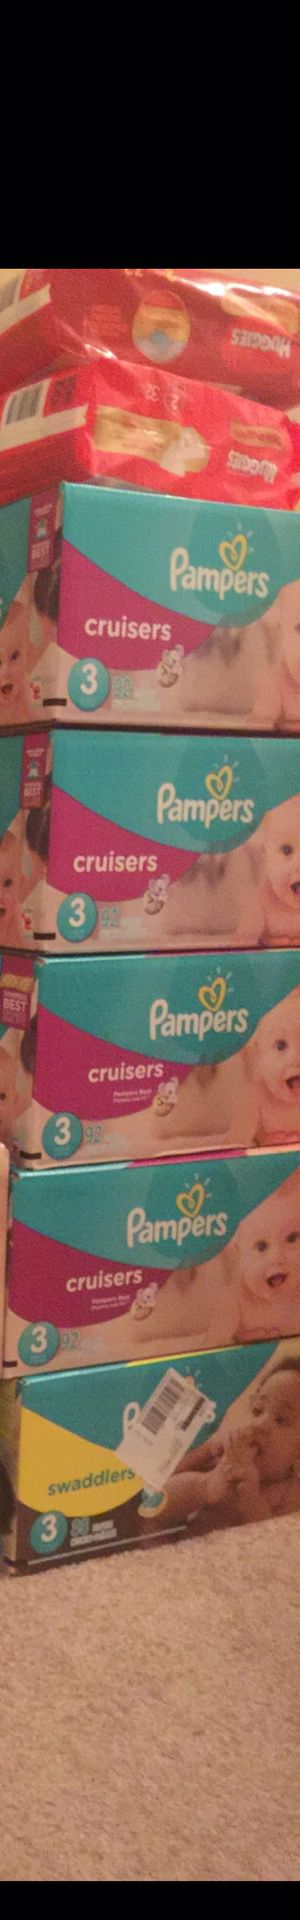 Pampers size 3 25.00 each case.... pack of size 1 packs $7.00 each for Sale in Raleigh, NC